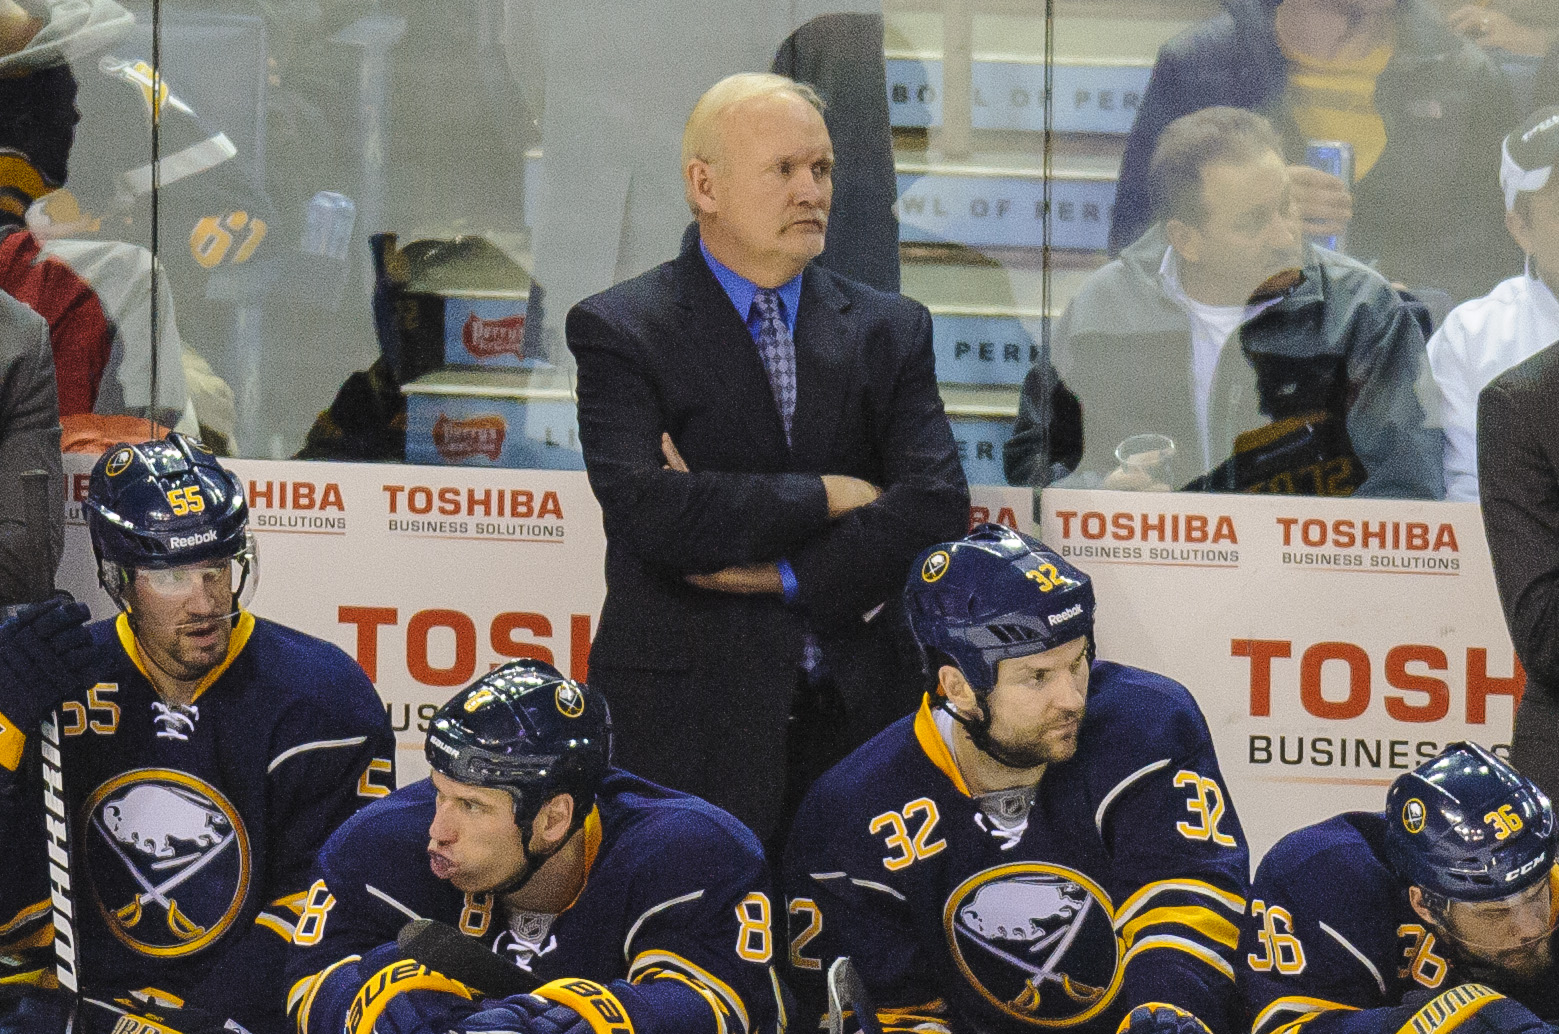 RUFF RELIEVED OF DUTIES AS SABRES' HEAD COACH; ROLSTON NAMED INTERIM COACH